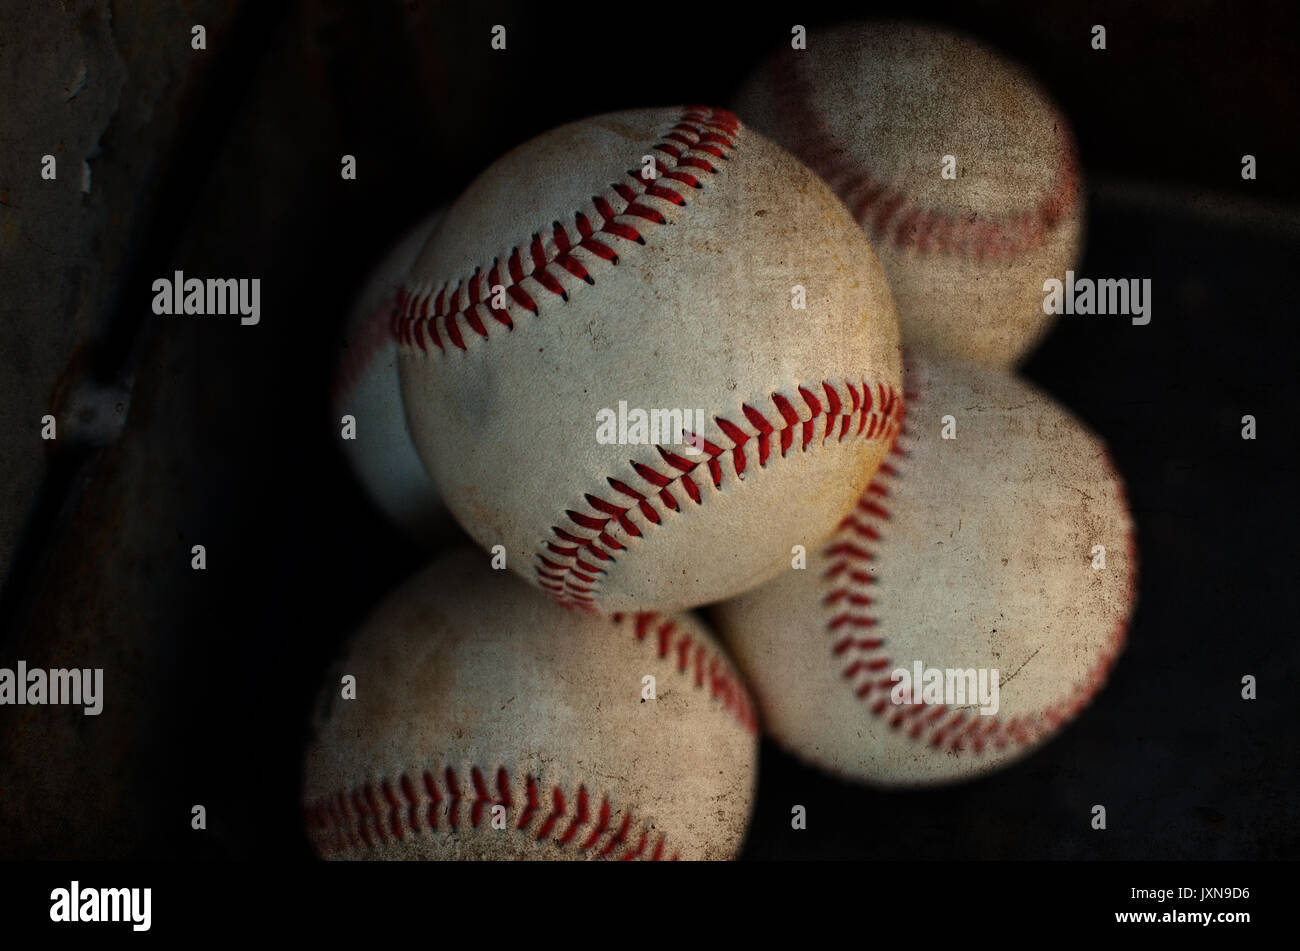 Pile of baseballs laid out for ball player, equipment needed for the game. - Stock Image